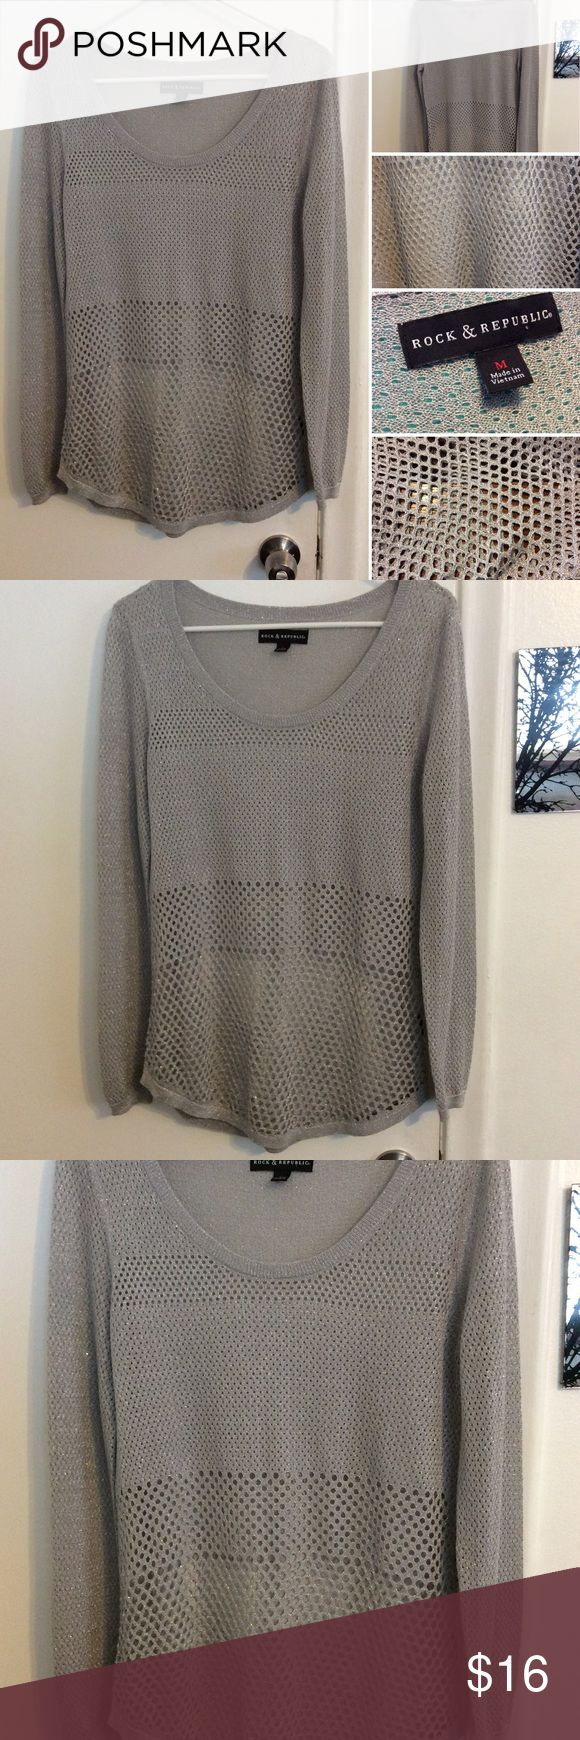 Rock & Republic Gray Metallic Long Sleeve Top This Rock & Republic top is in excellent new like condition. This is a see through netted top and has metallic threading throughout. The materials tags has been removed so I am unsure of the materials. This is a size medium Rock & Republic Tops